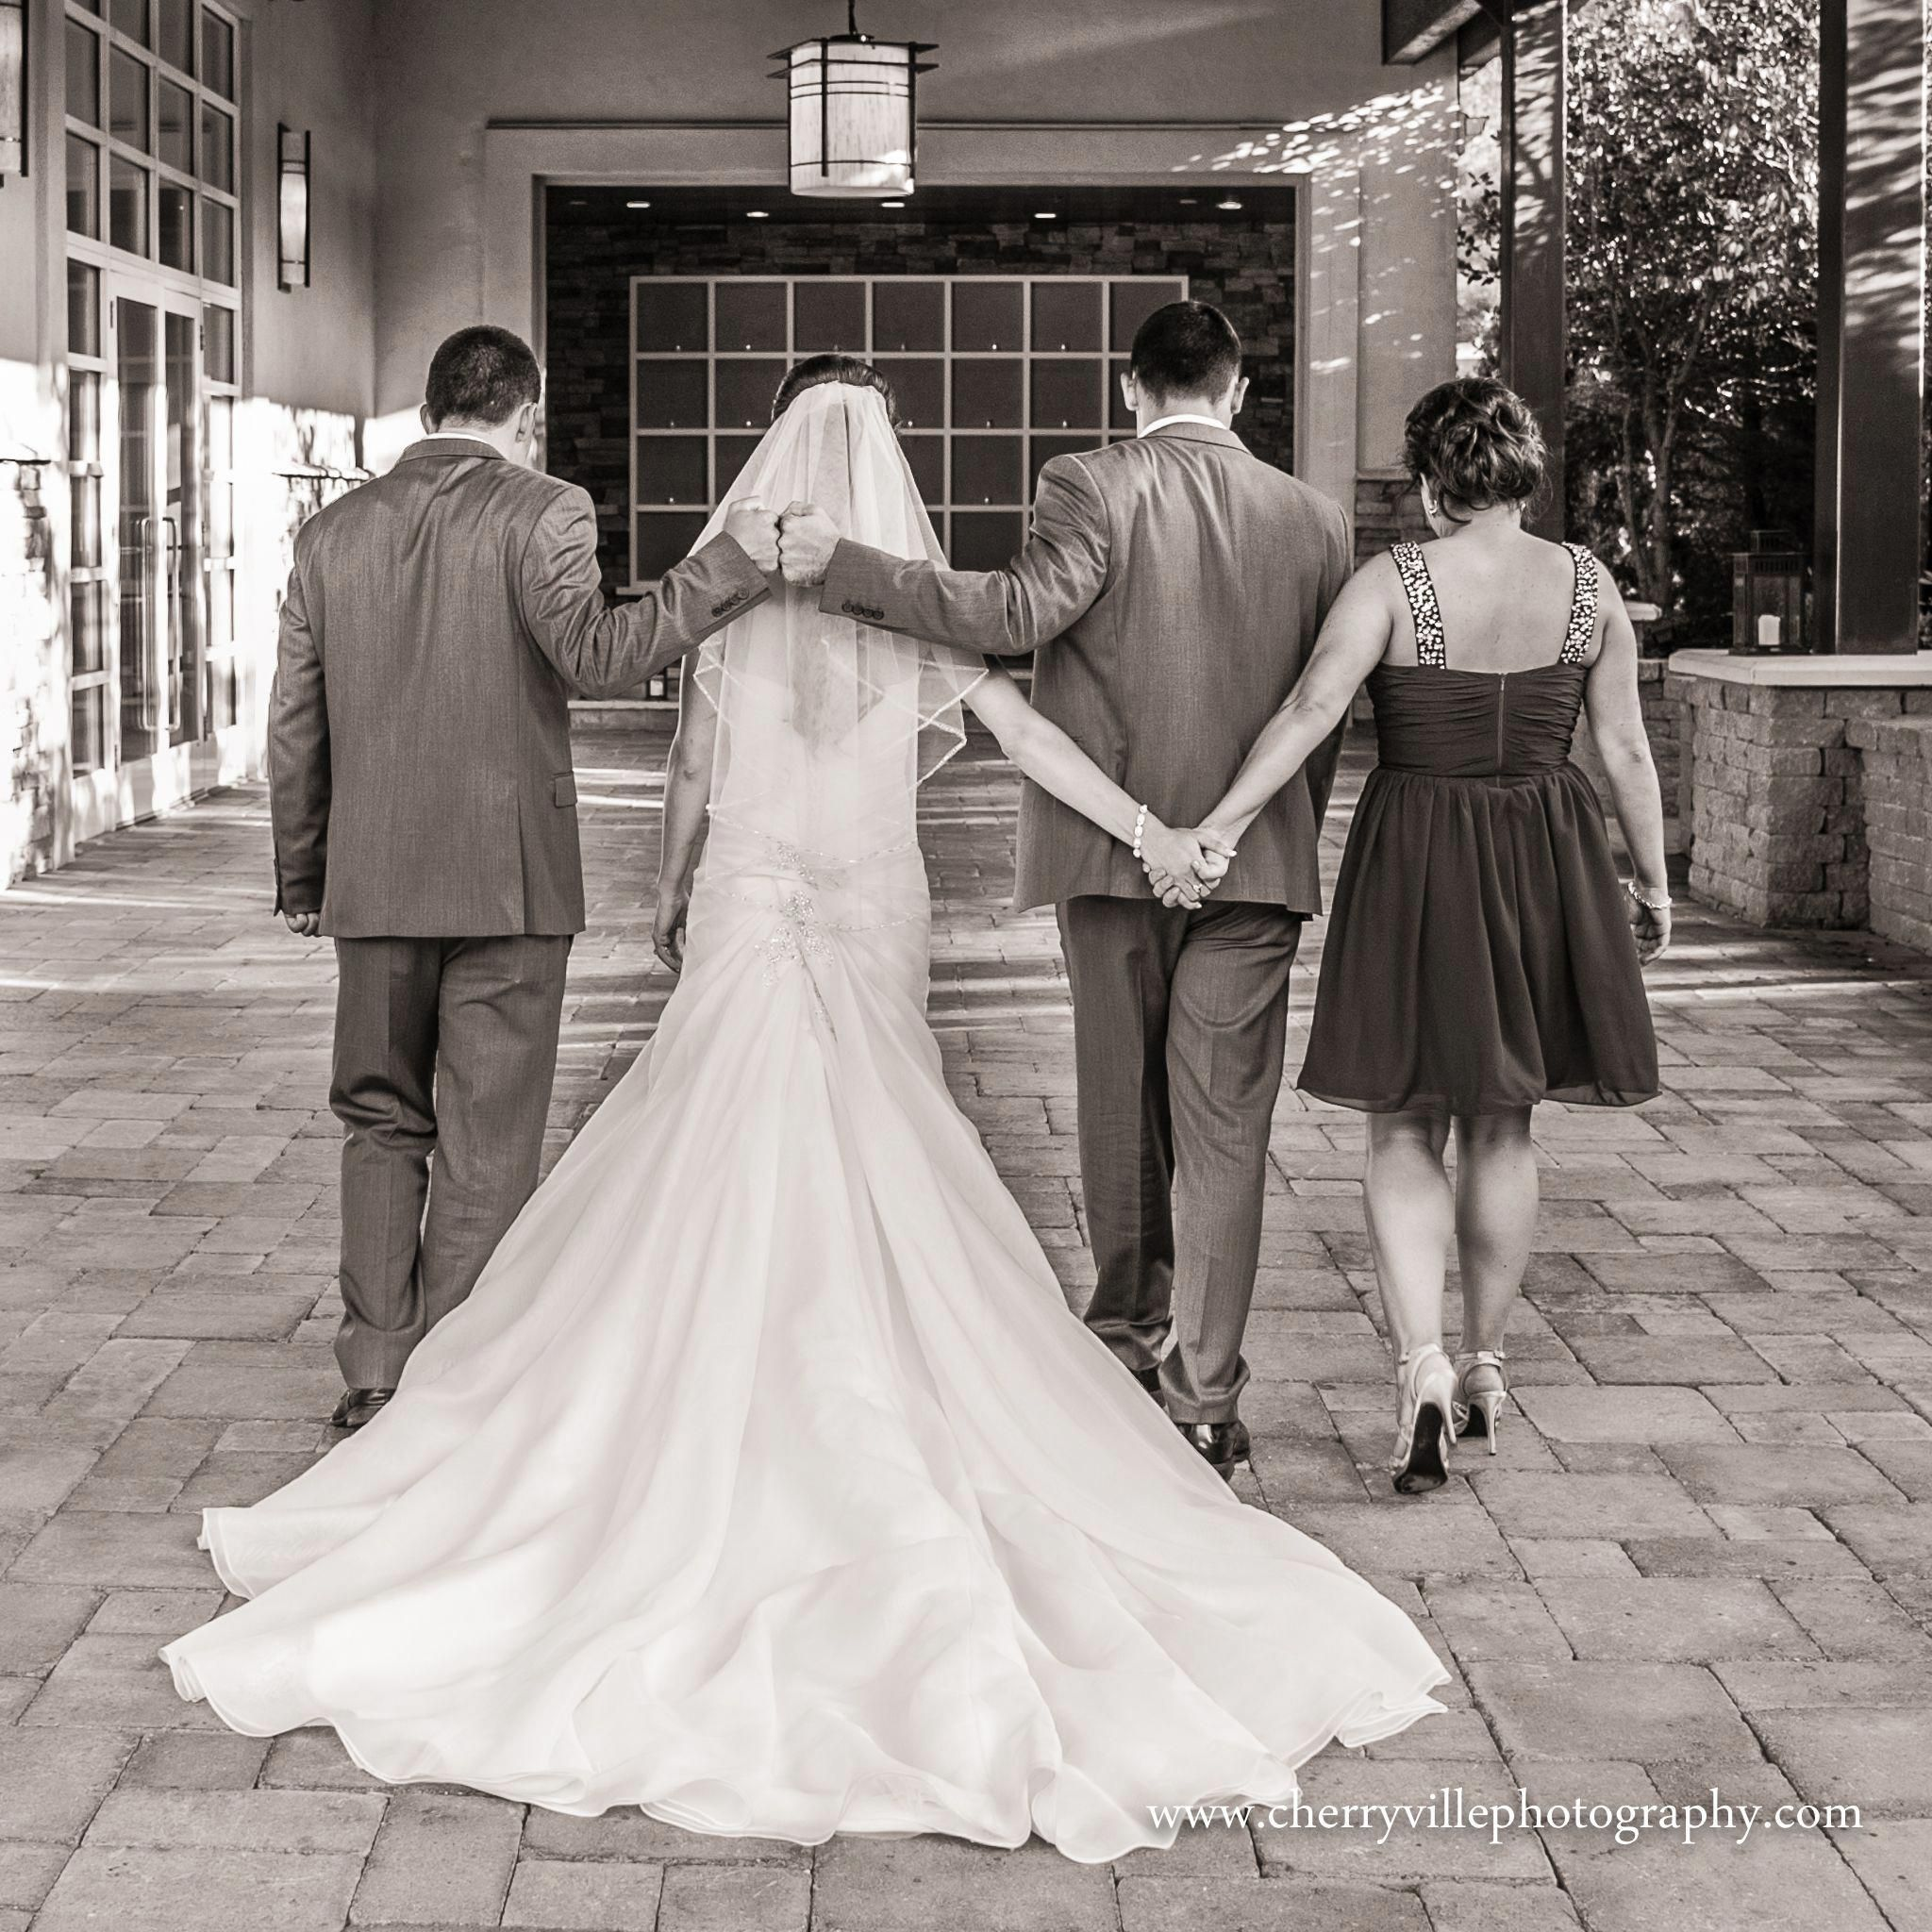 Such a sweet picture of the Bride and Groom with the Best Man and Maid of Honor… #bridepictures